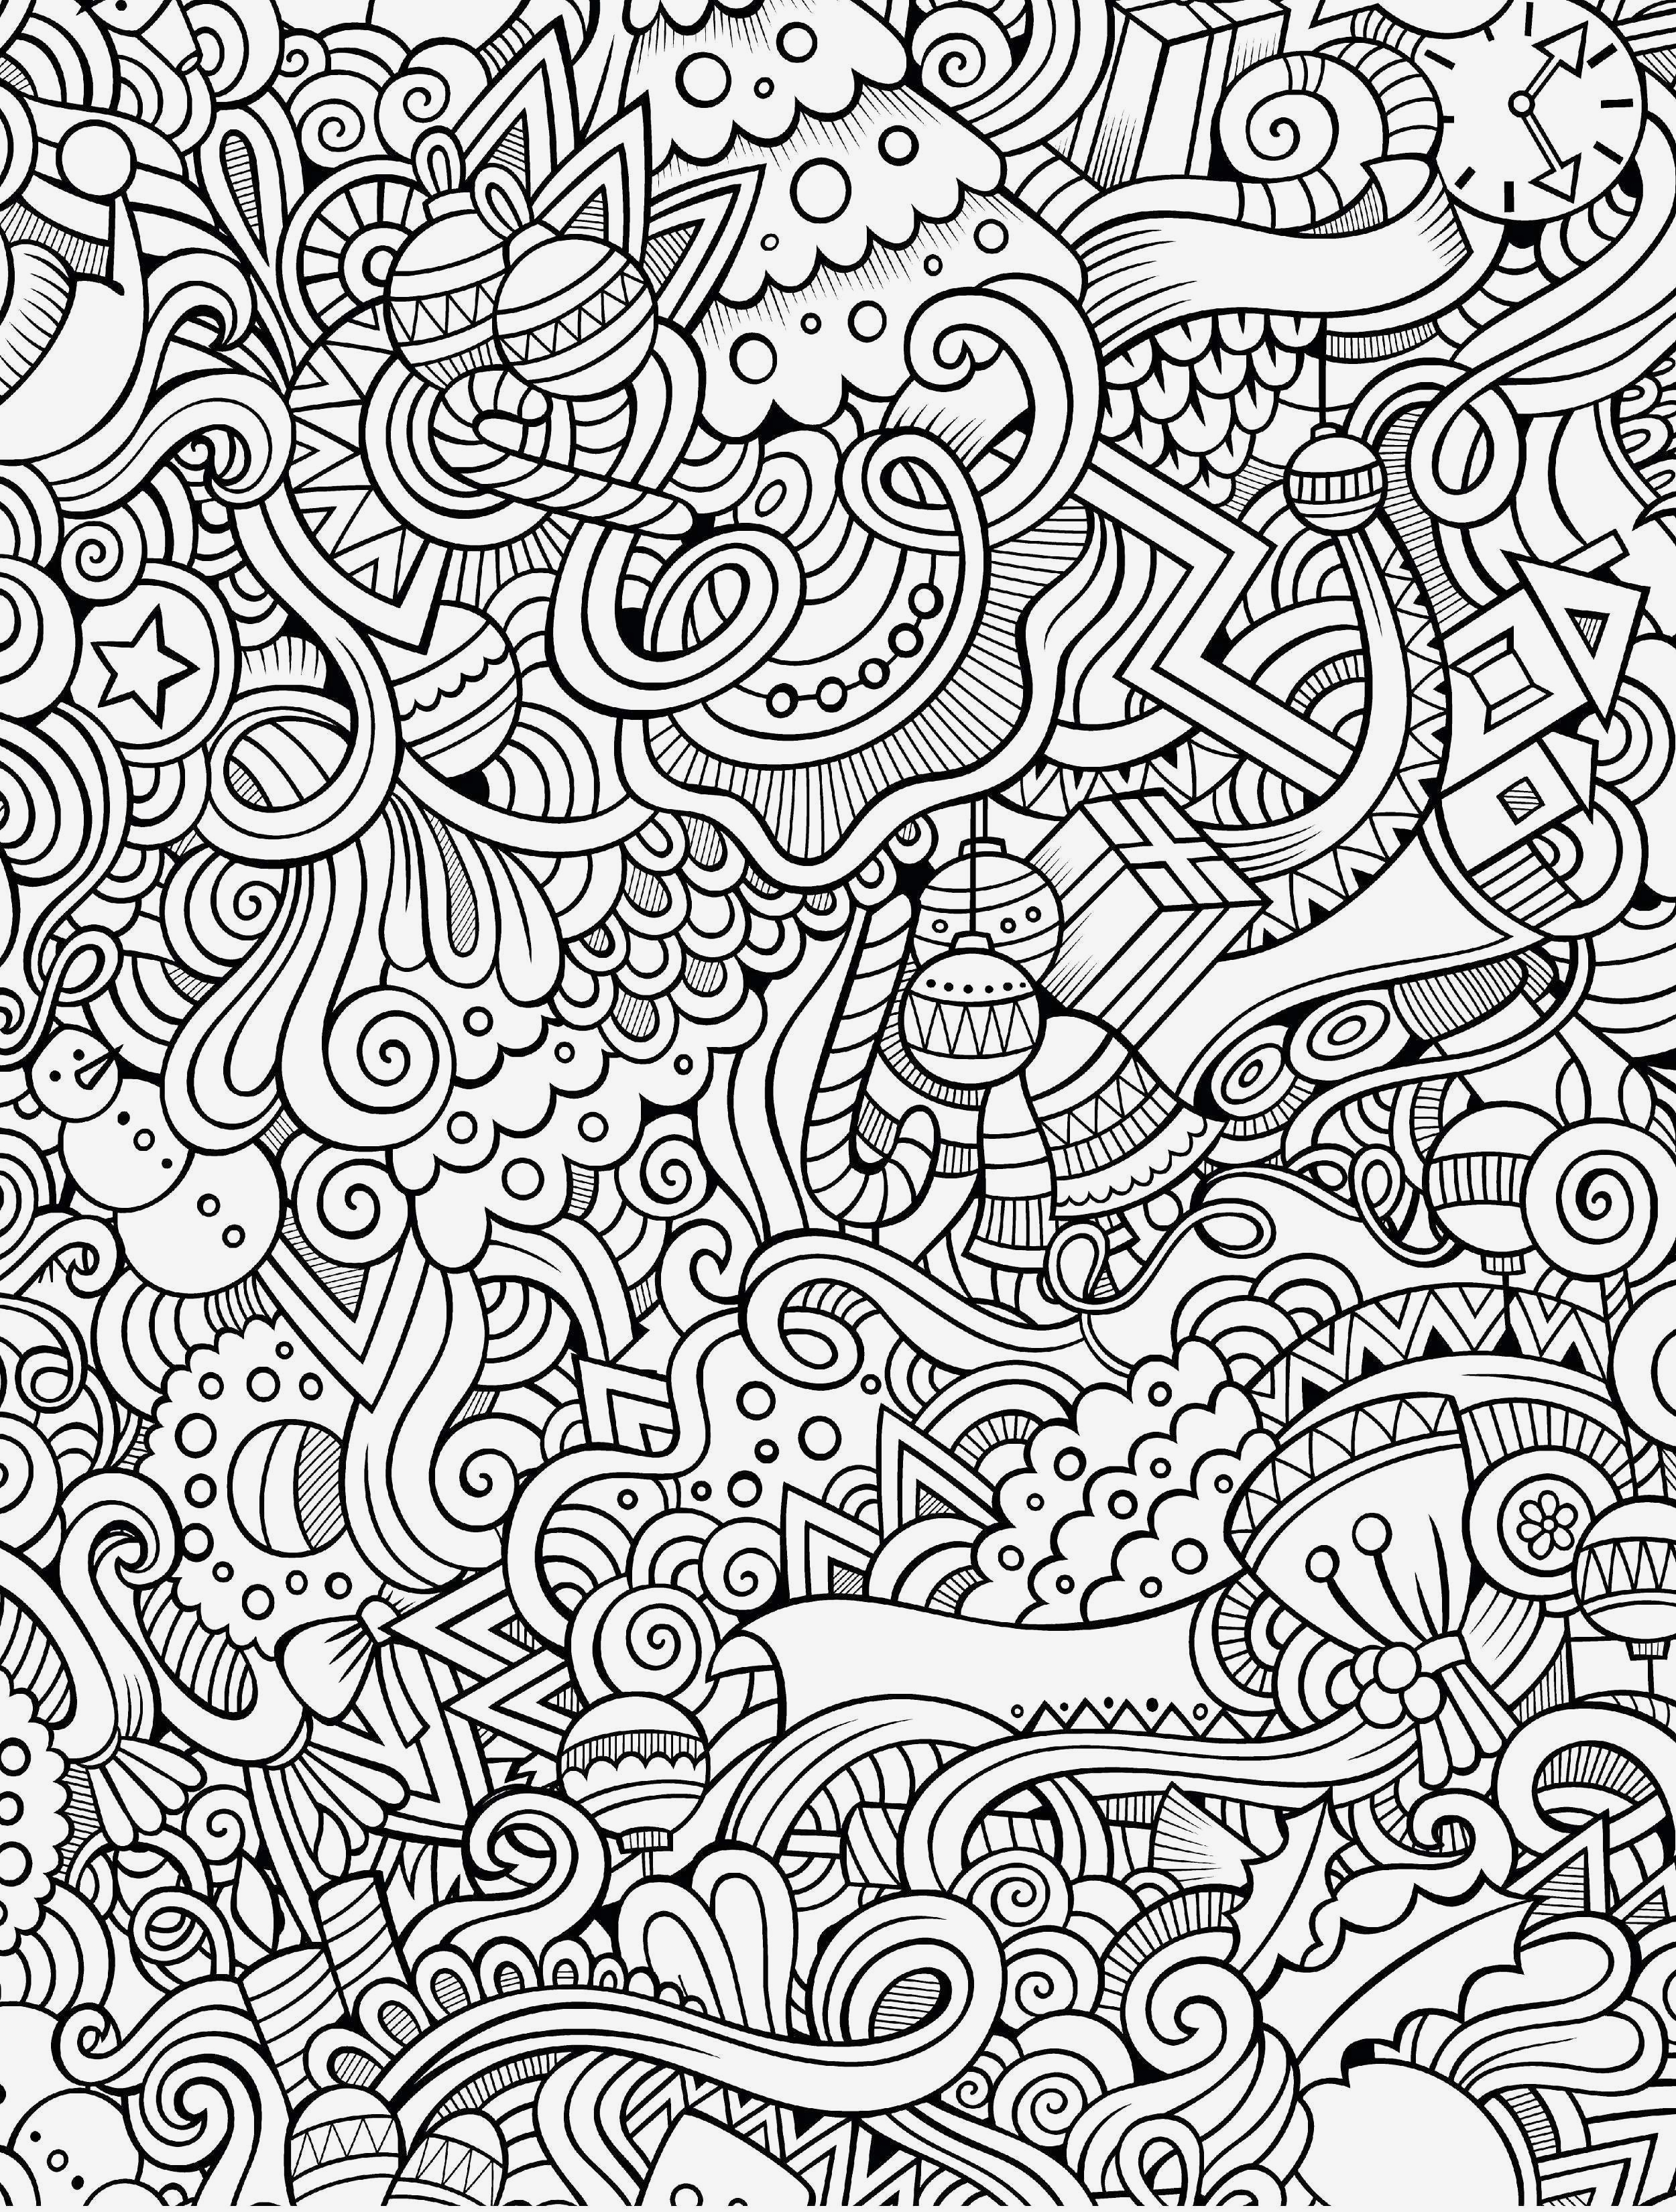 nature mandala coloring pages Collection-Free Printable Coloring Pages for Adults Advanced Amazing Advantages Christmas Color Pages to Print Free Free Printable Coloring Pages 19-f